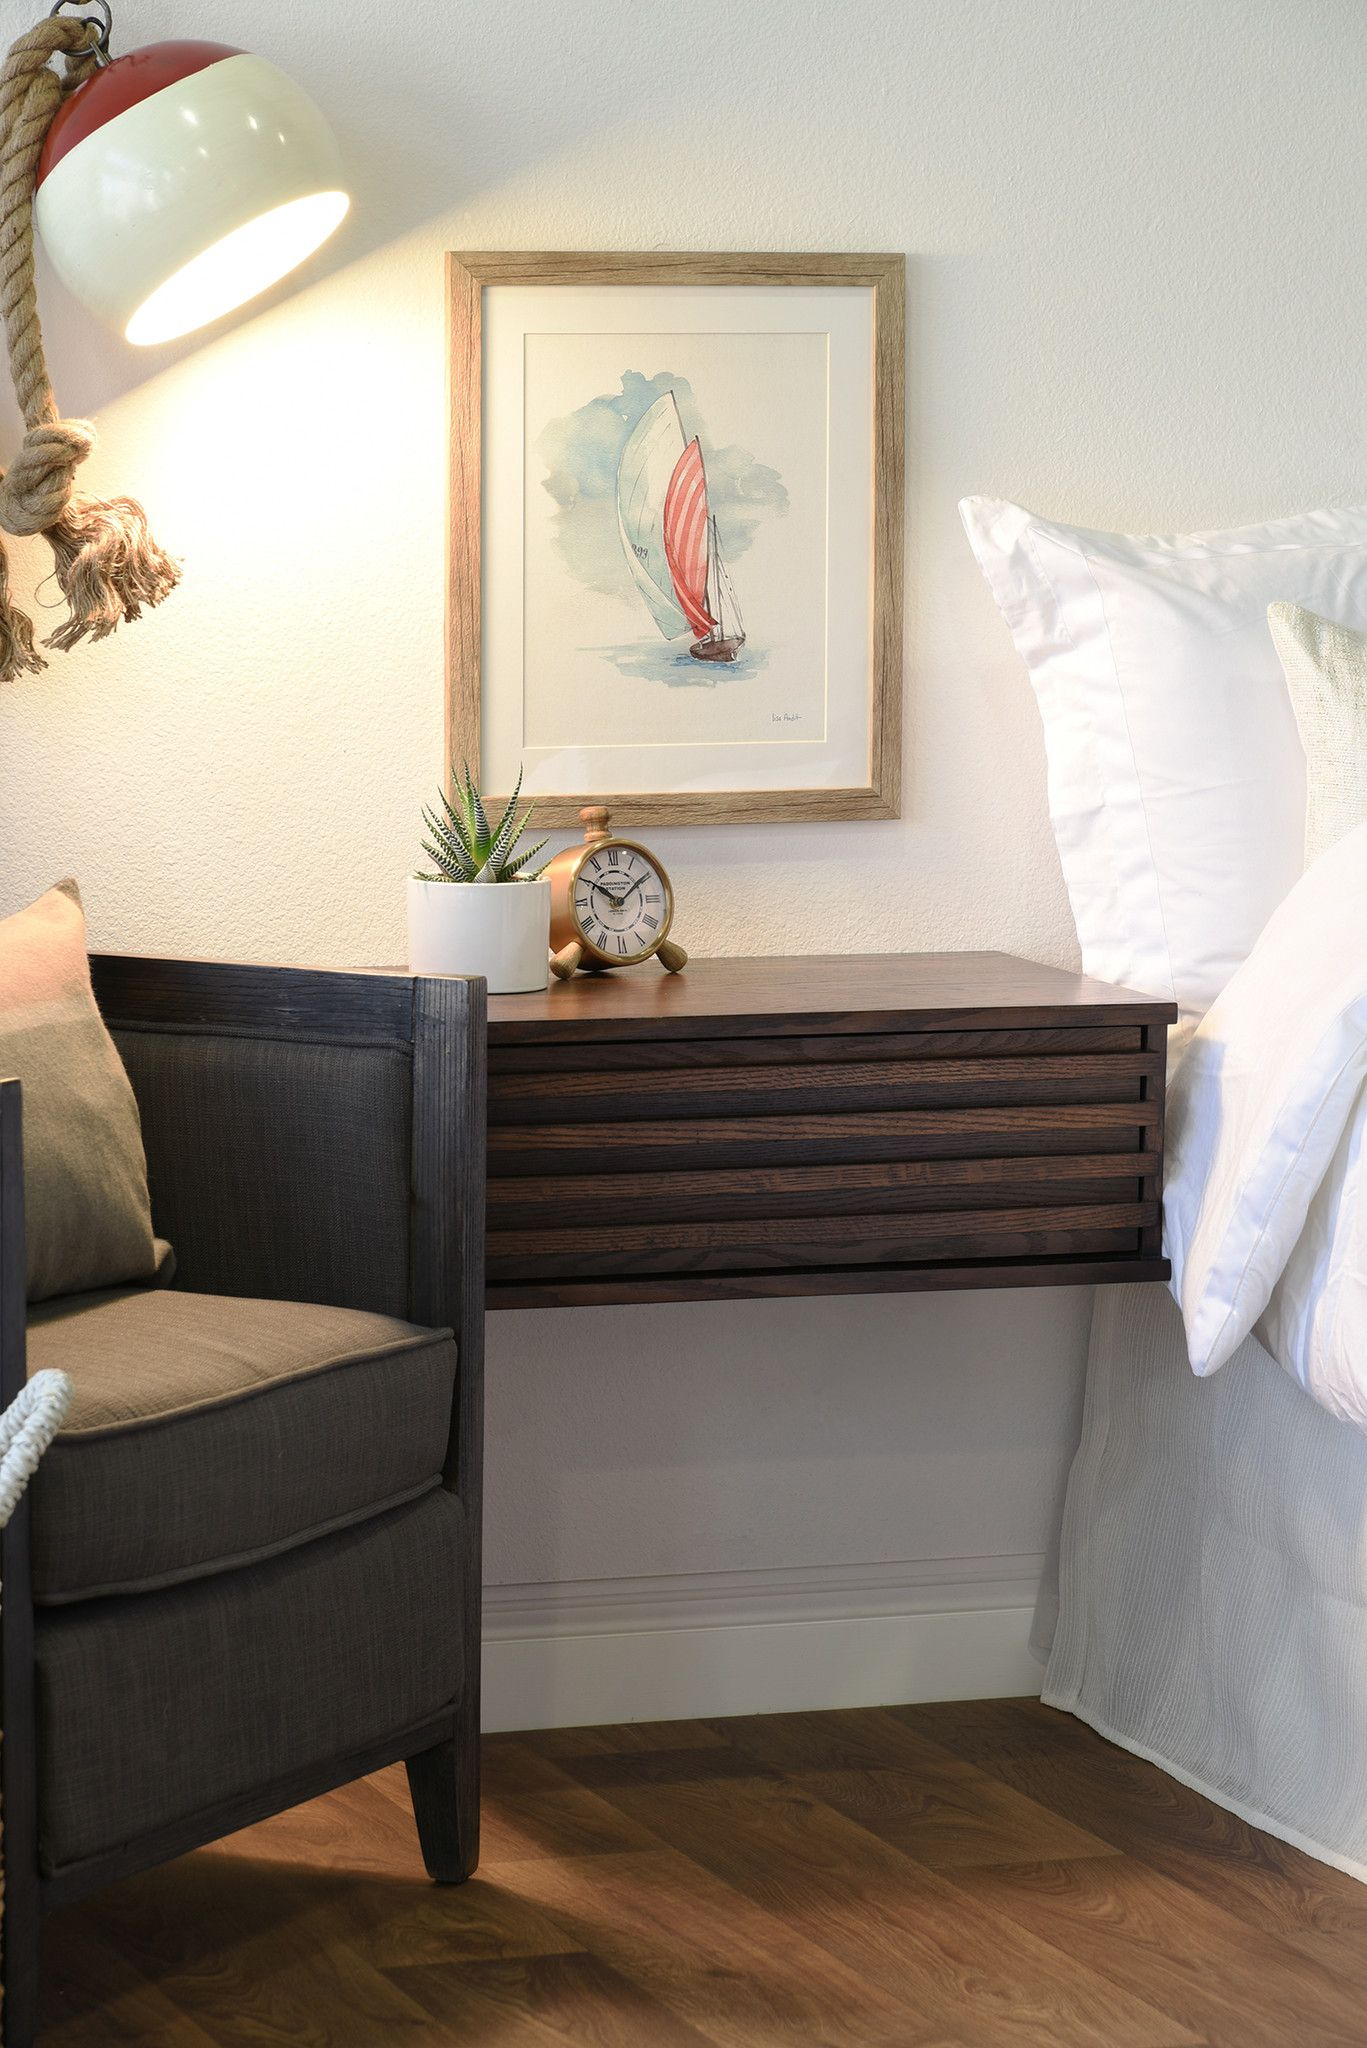 Awesome diy home improvement on  budget ideas also low with big impact rh ar pinterest